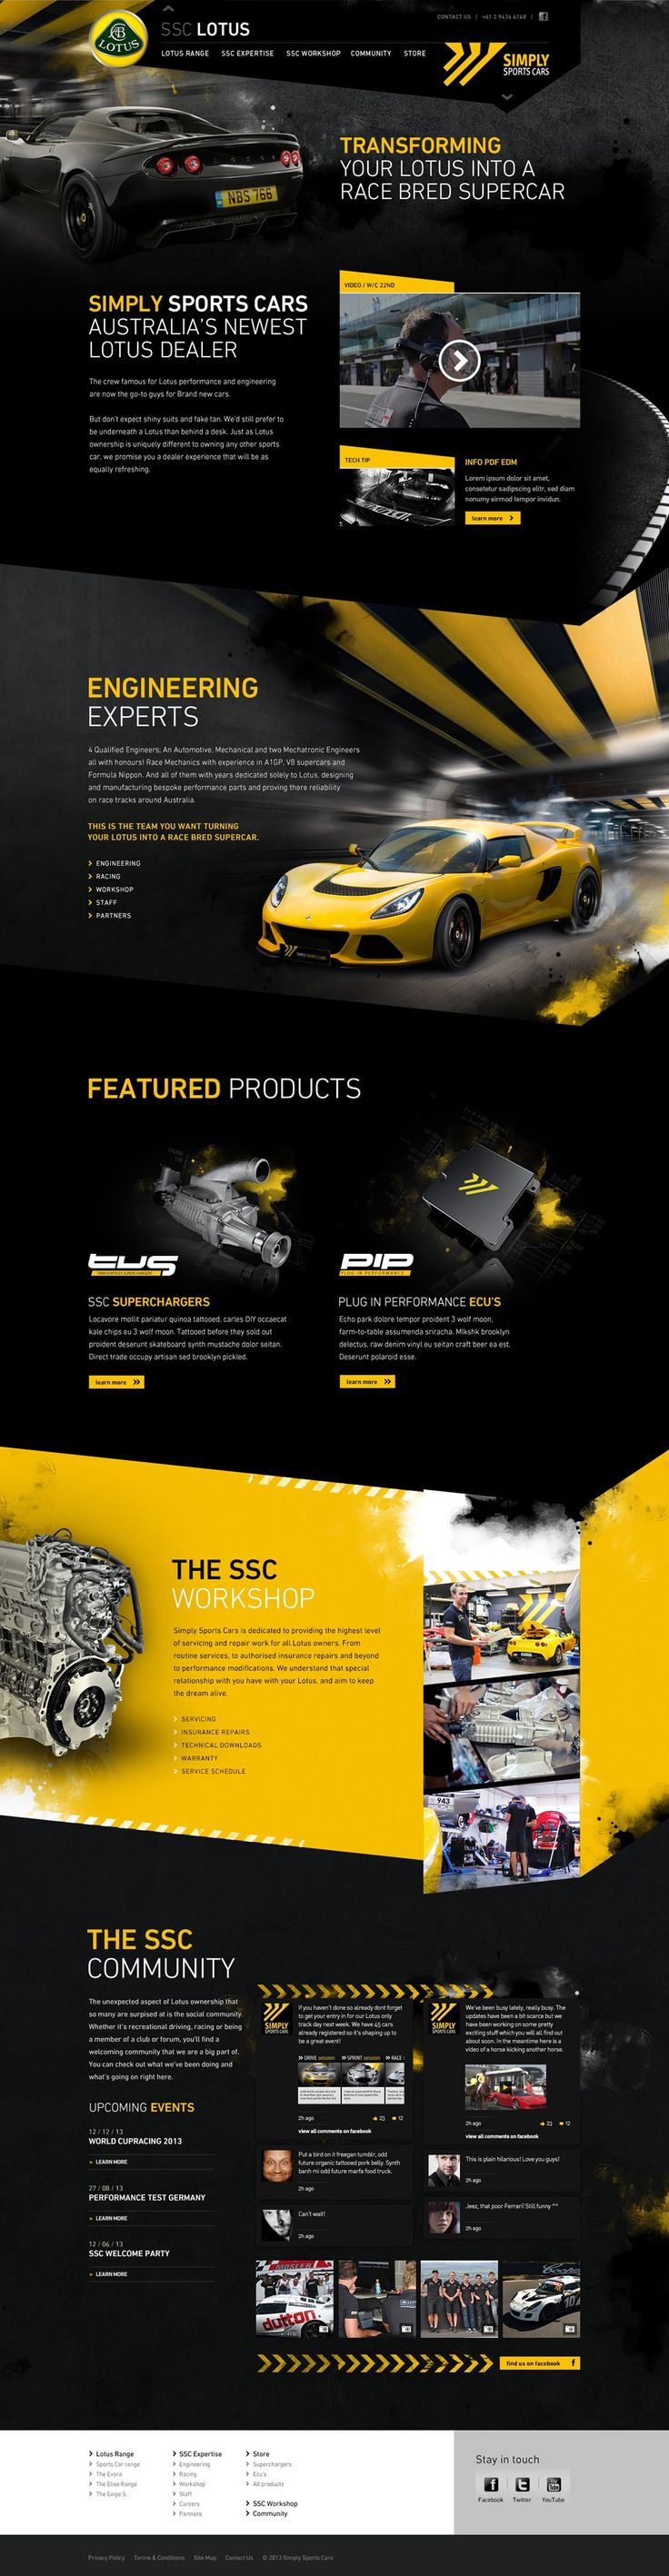 Cool Automotive Web Design on the Internet. Lotus. #automotive #webdesign #webdevelopment #website